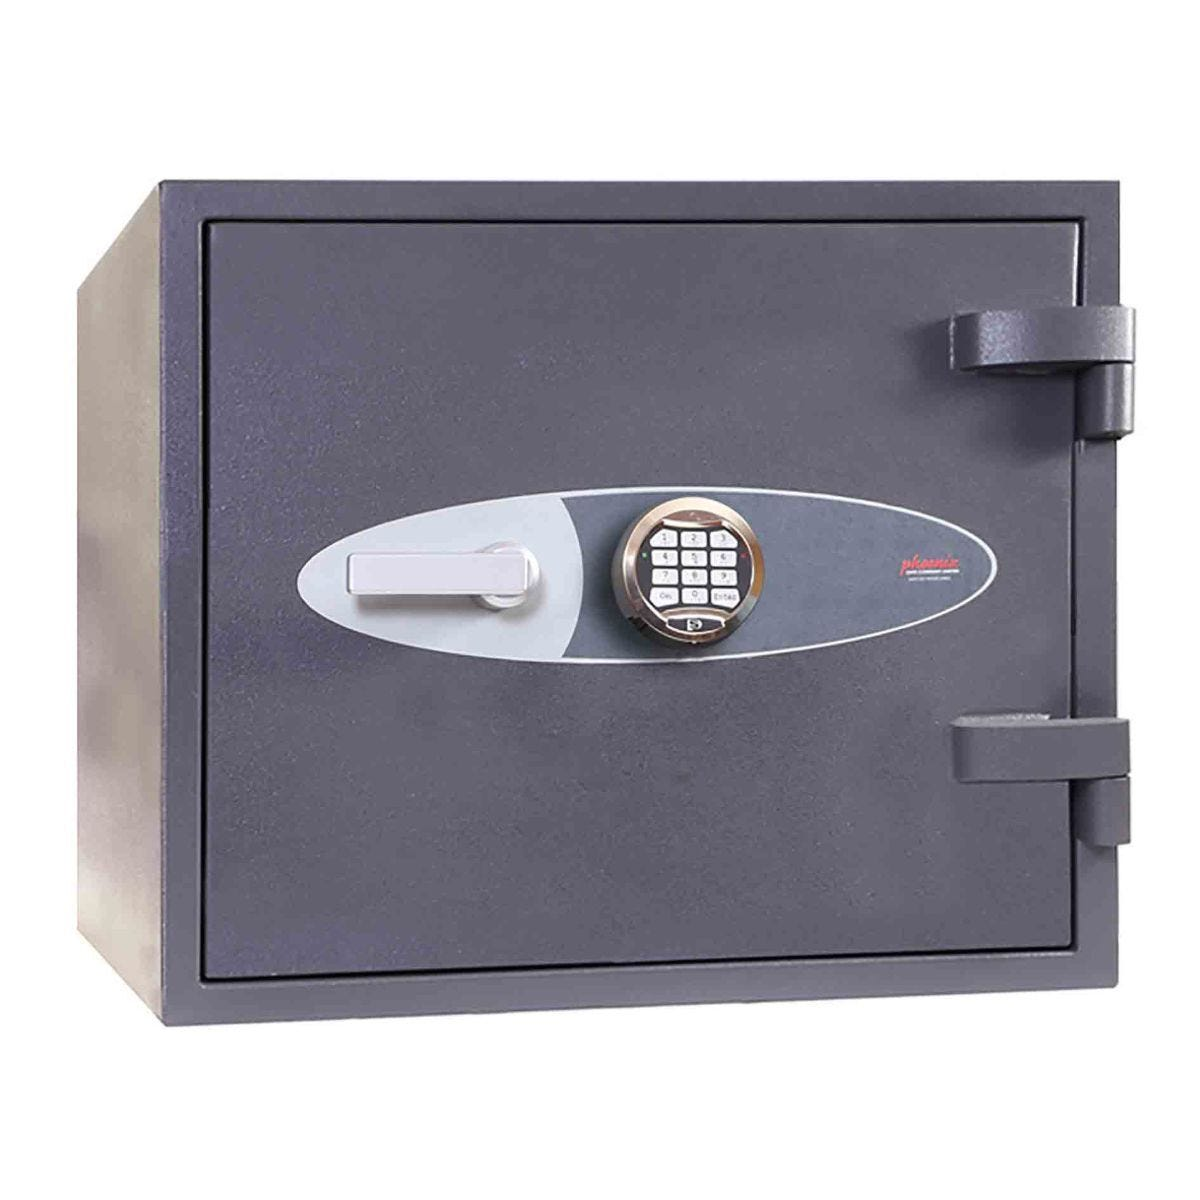 Phoenix Neptune HS1052E High Security Euro Grade 1 Safe with Electronic Lock Size 2